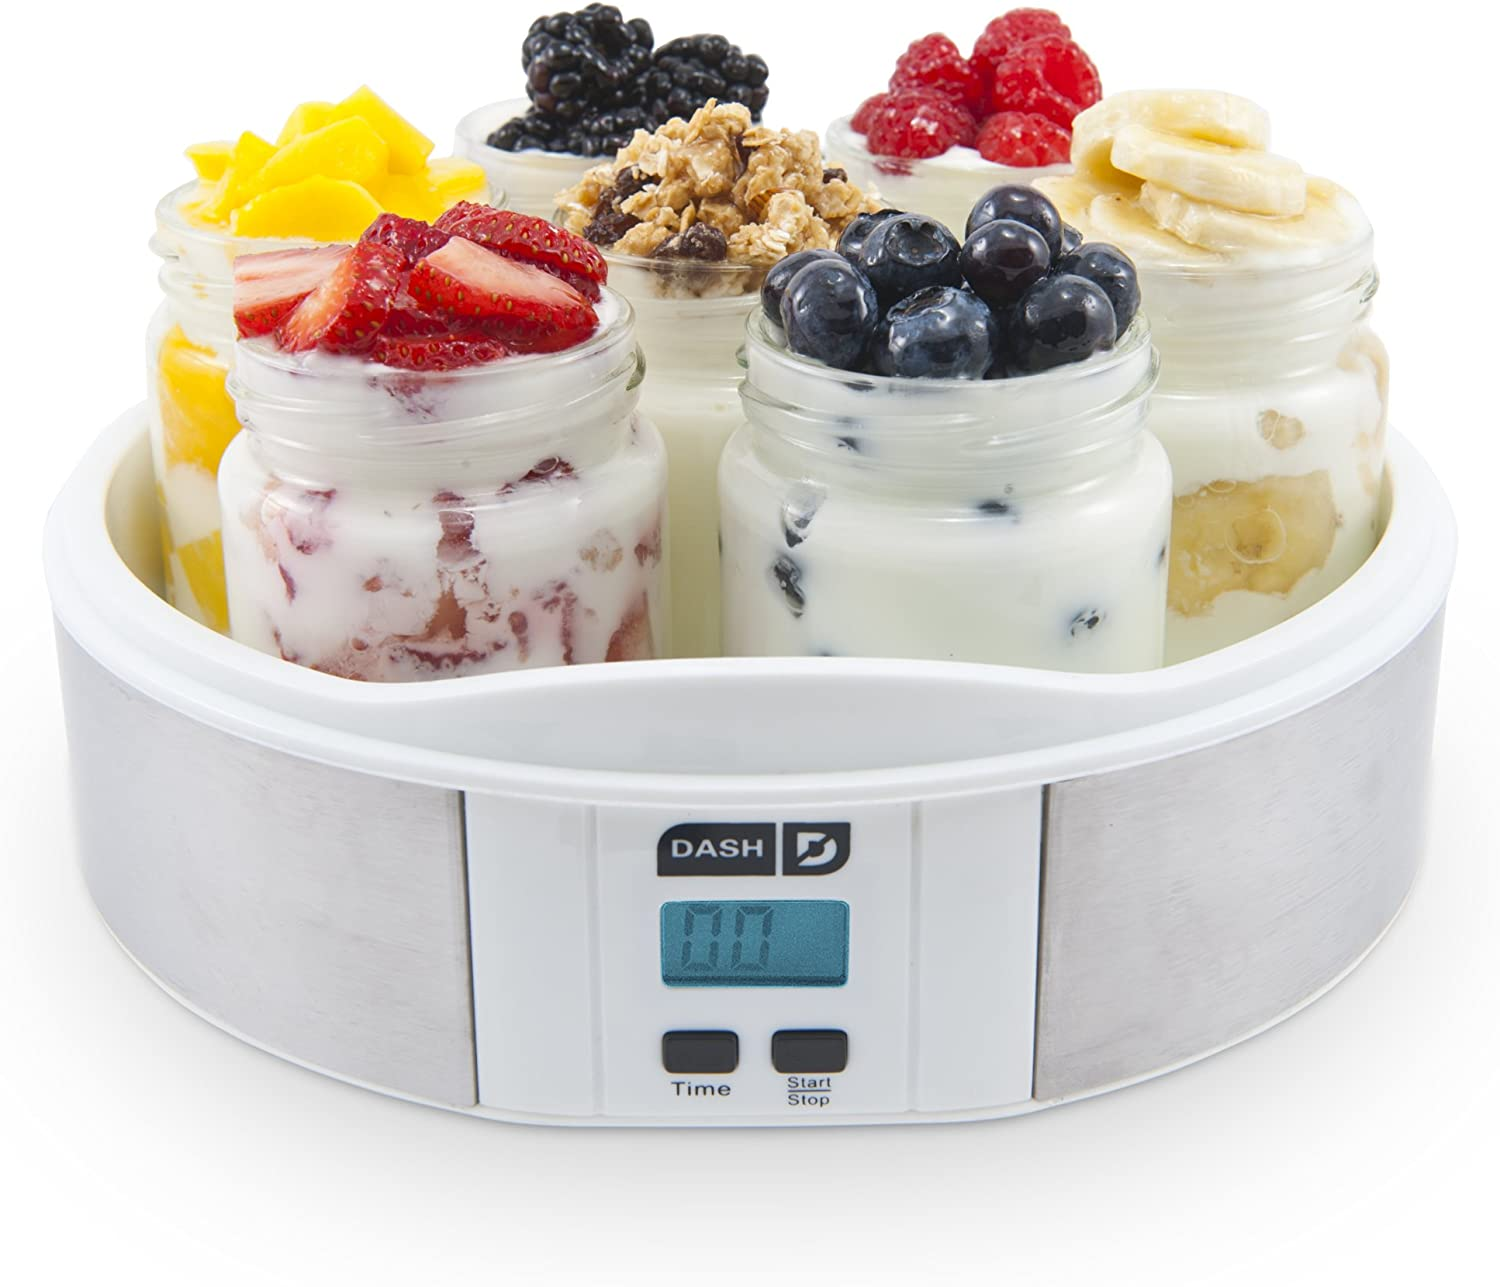 Dash Yogurt Maker Machine with Stainless Steel Base, Digital Display, Auto Timer 7 Jars 8oz glass jars with BPA Free Lids Perfect for Homemade Baby Yogurt, Kids Yogurt, or Grab and Go Breakfast